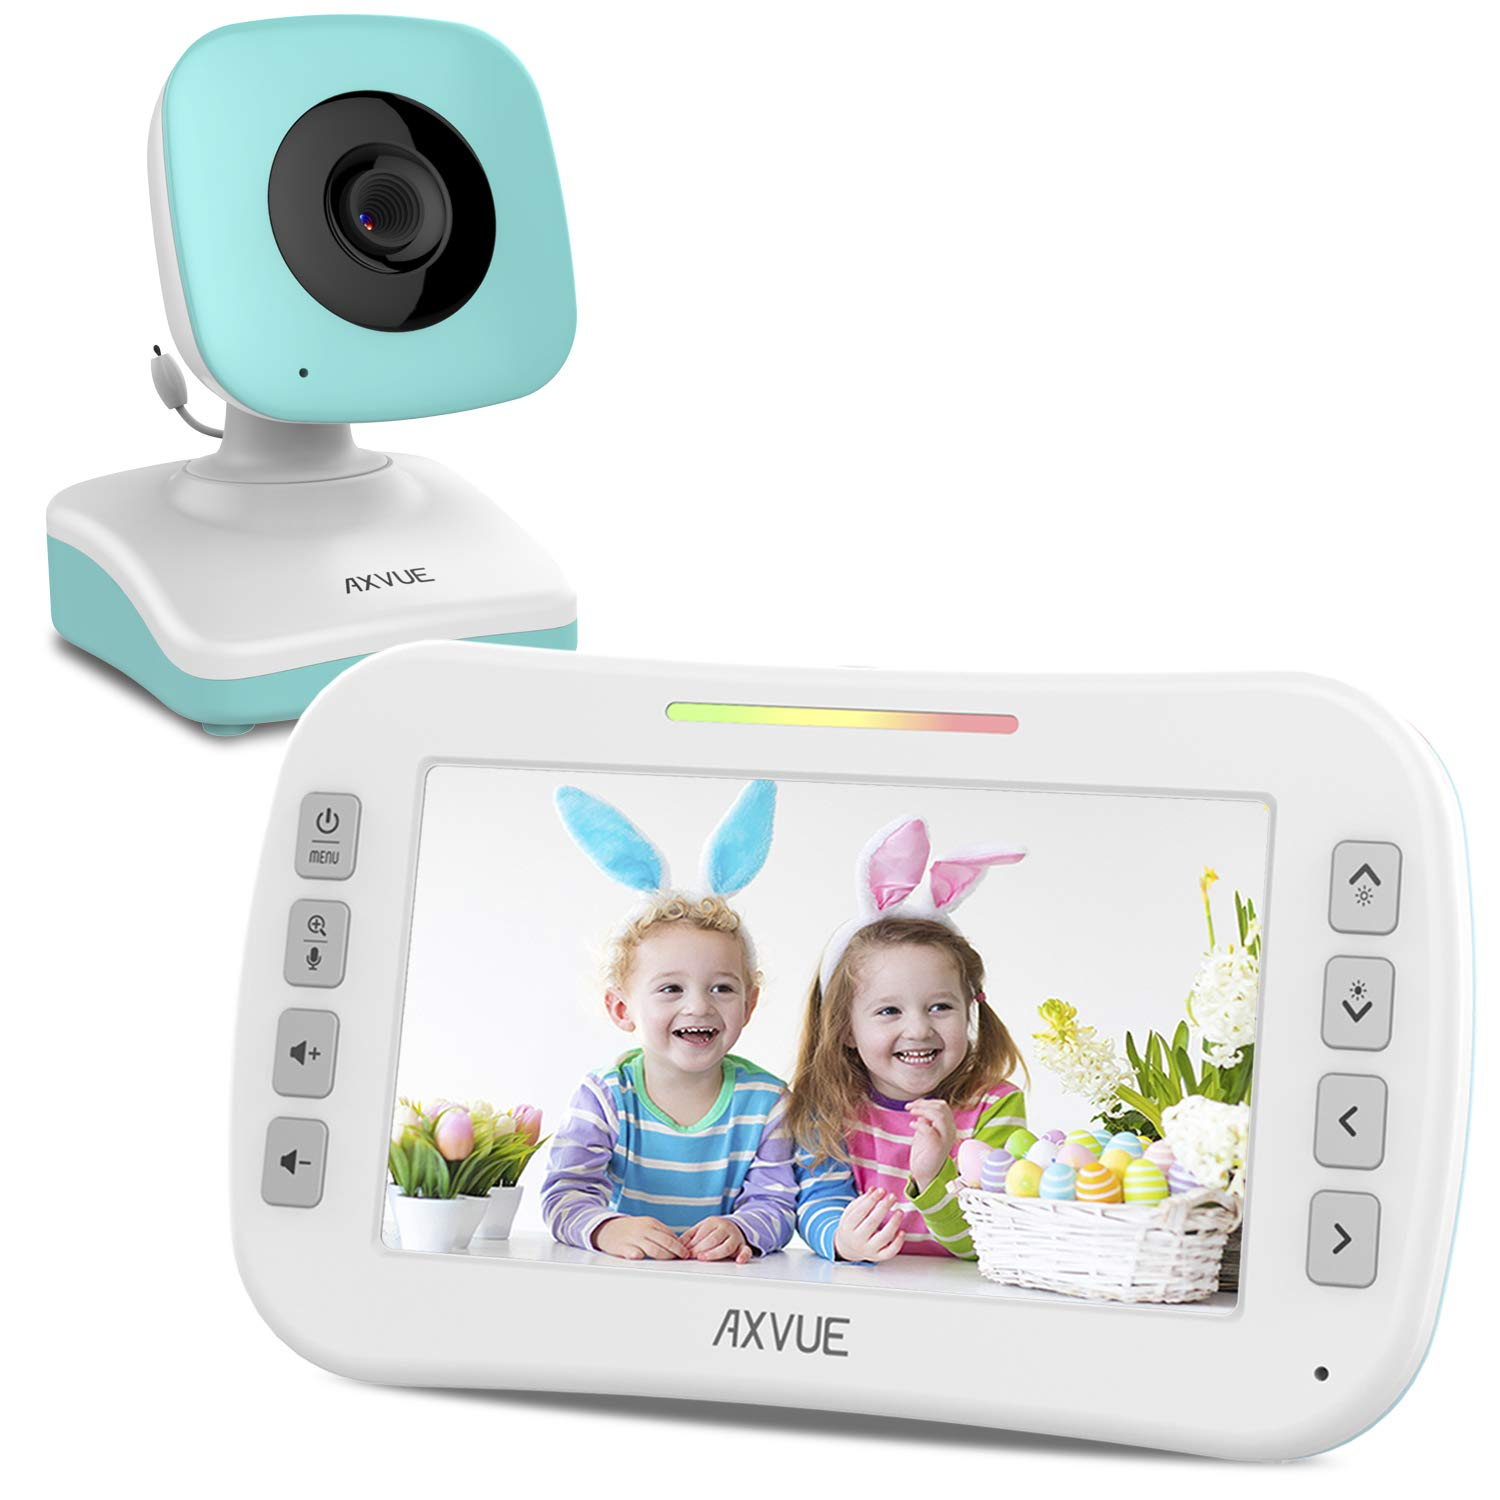 Video Baby Monitor with Wide Screen and Night Vision, Two Way Talk, Long Range Connection, No WIFI needed, Caring for Elder, Home Security Protect by Axvue, PINK, Model E9620-B